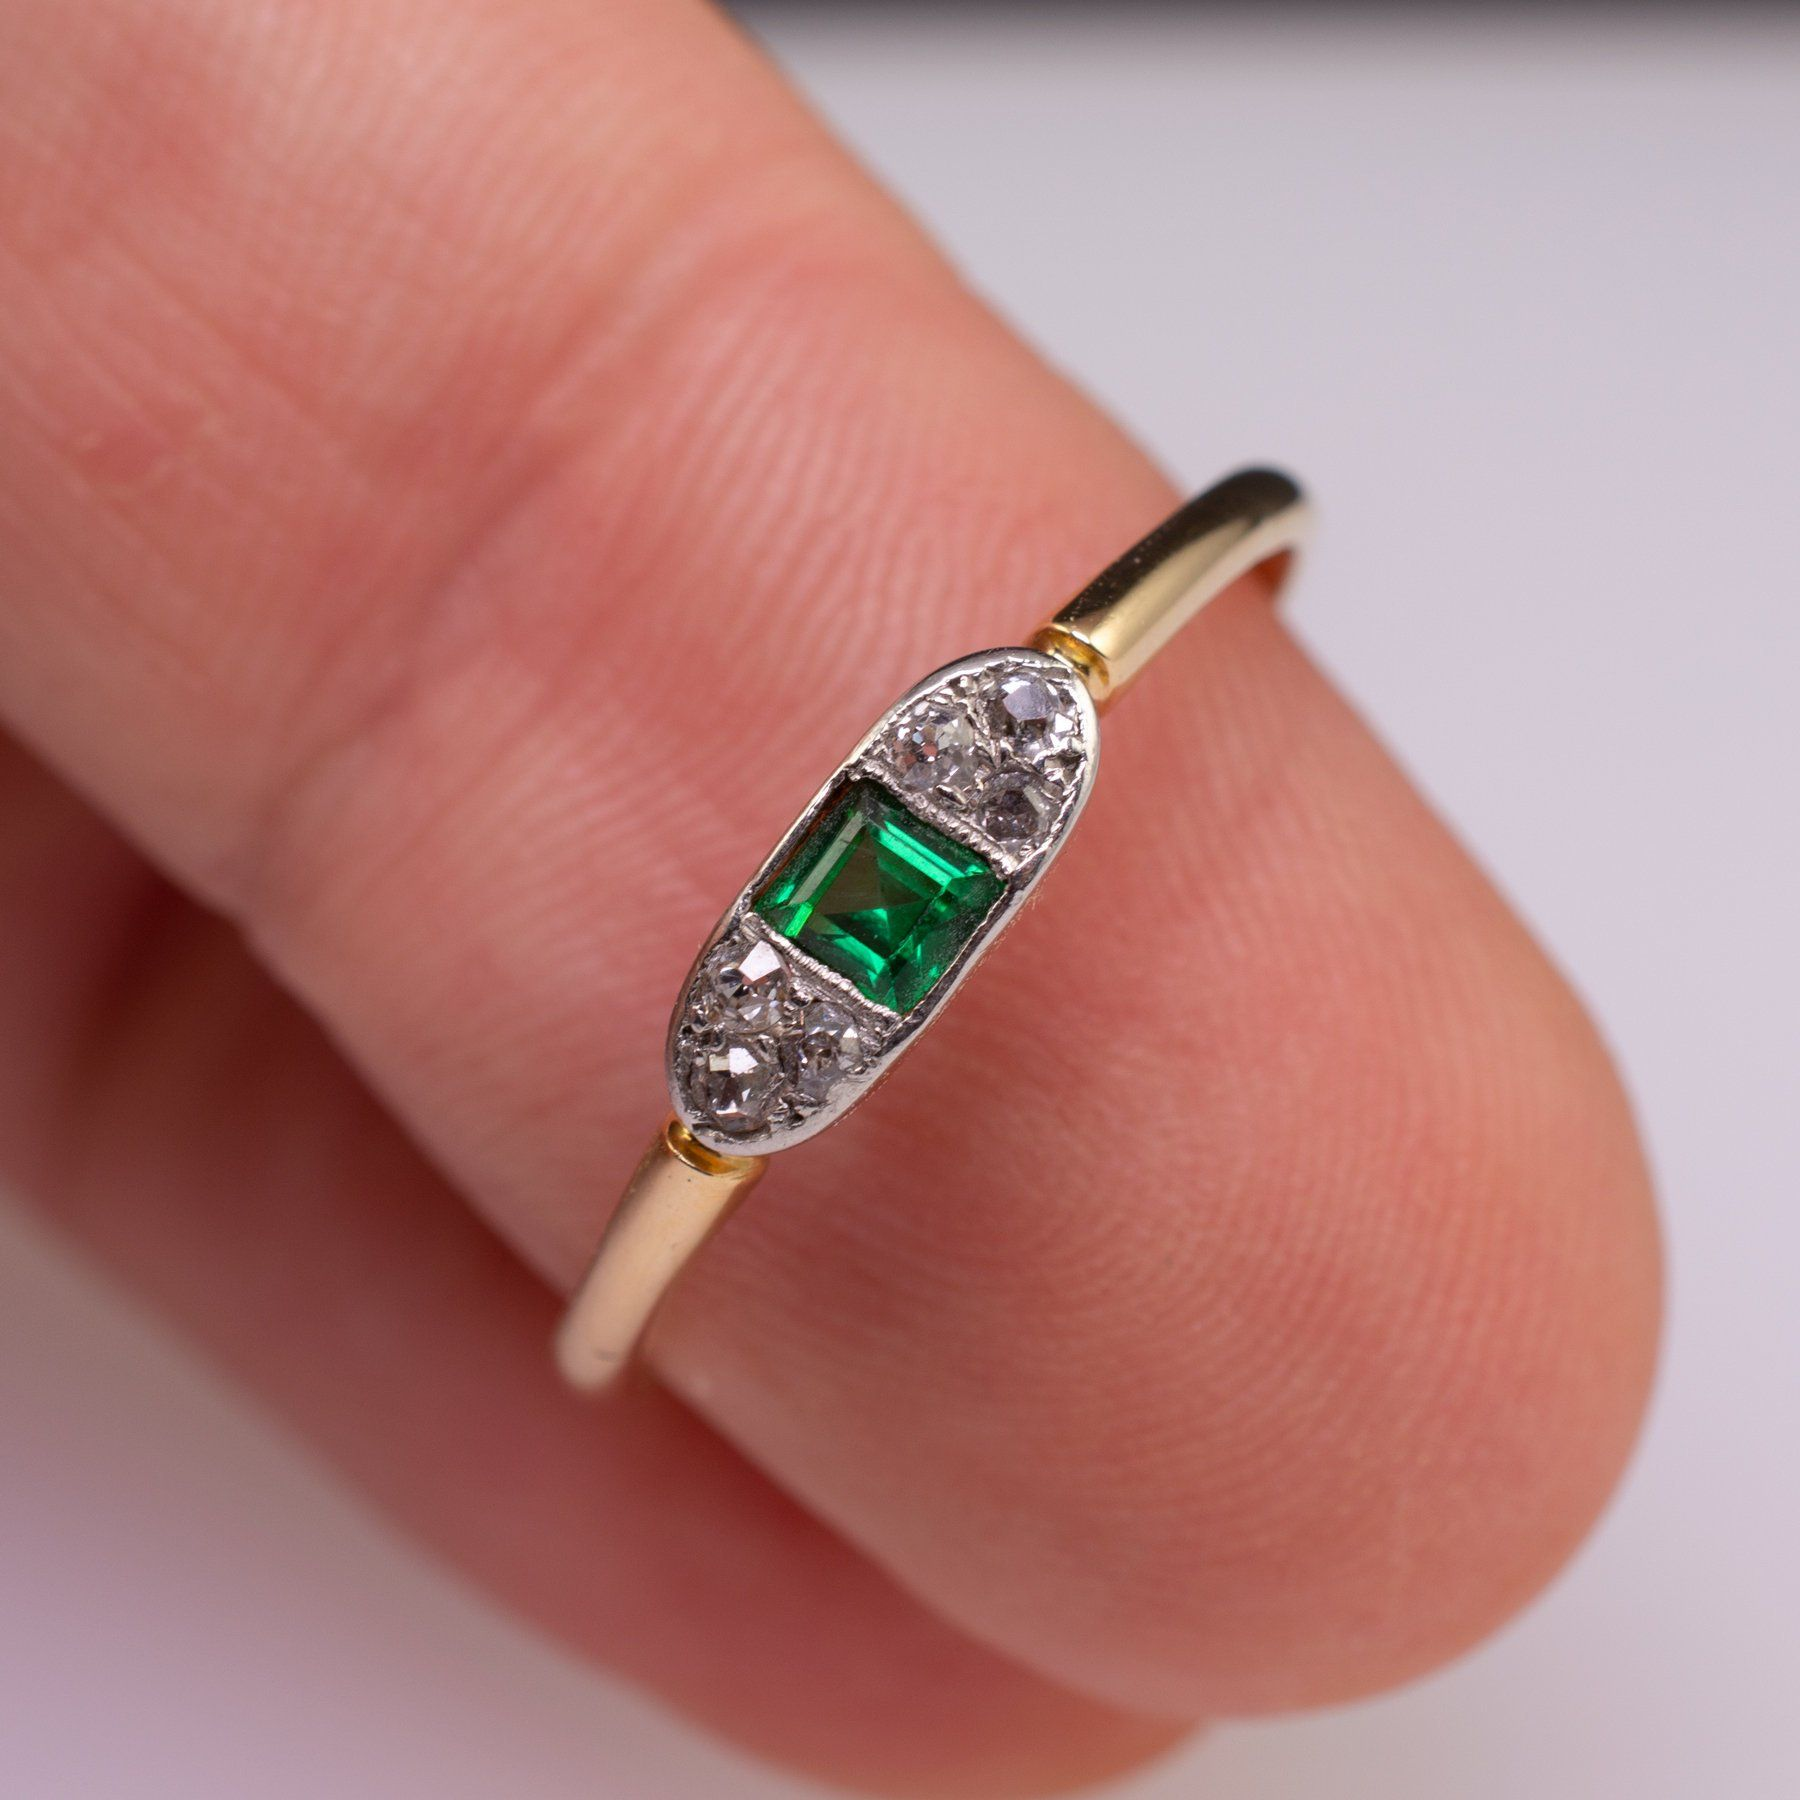 Antique 18ct Gold Diamond Solitaire Ring Dated Chester 1919 ...